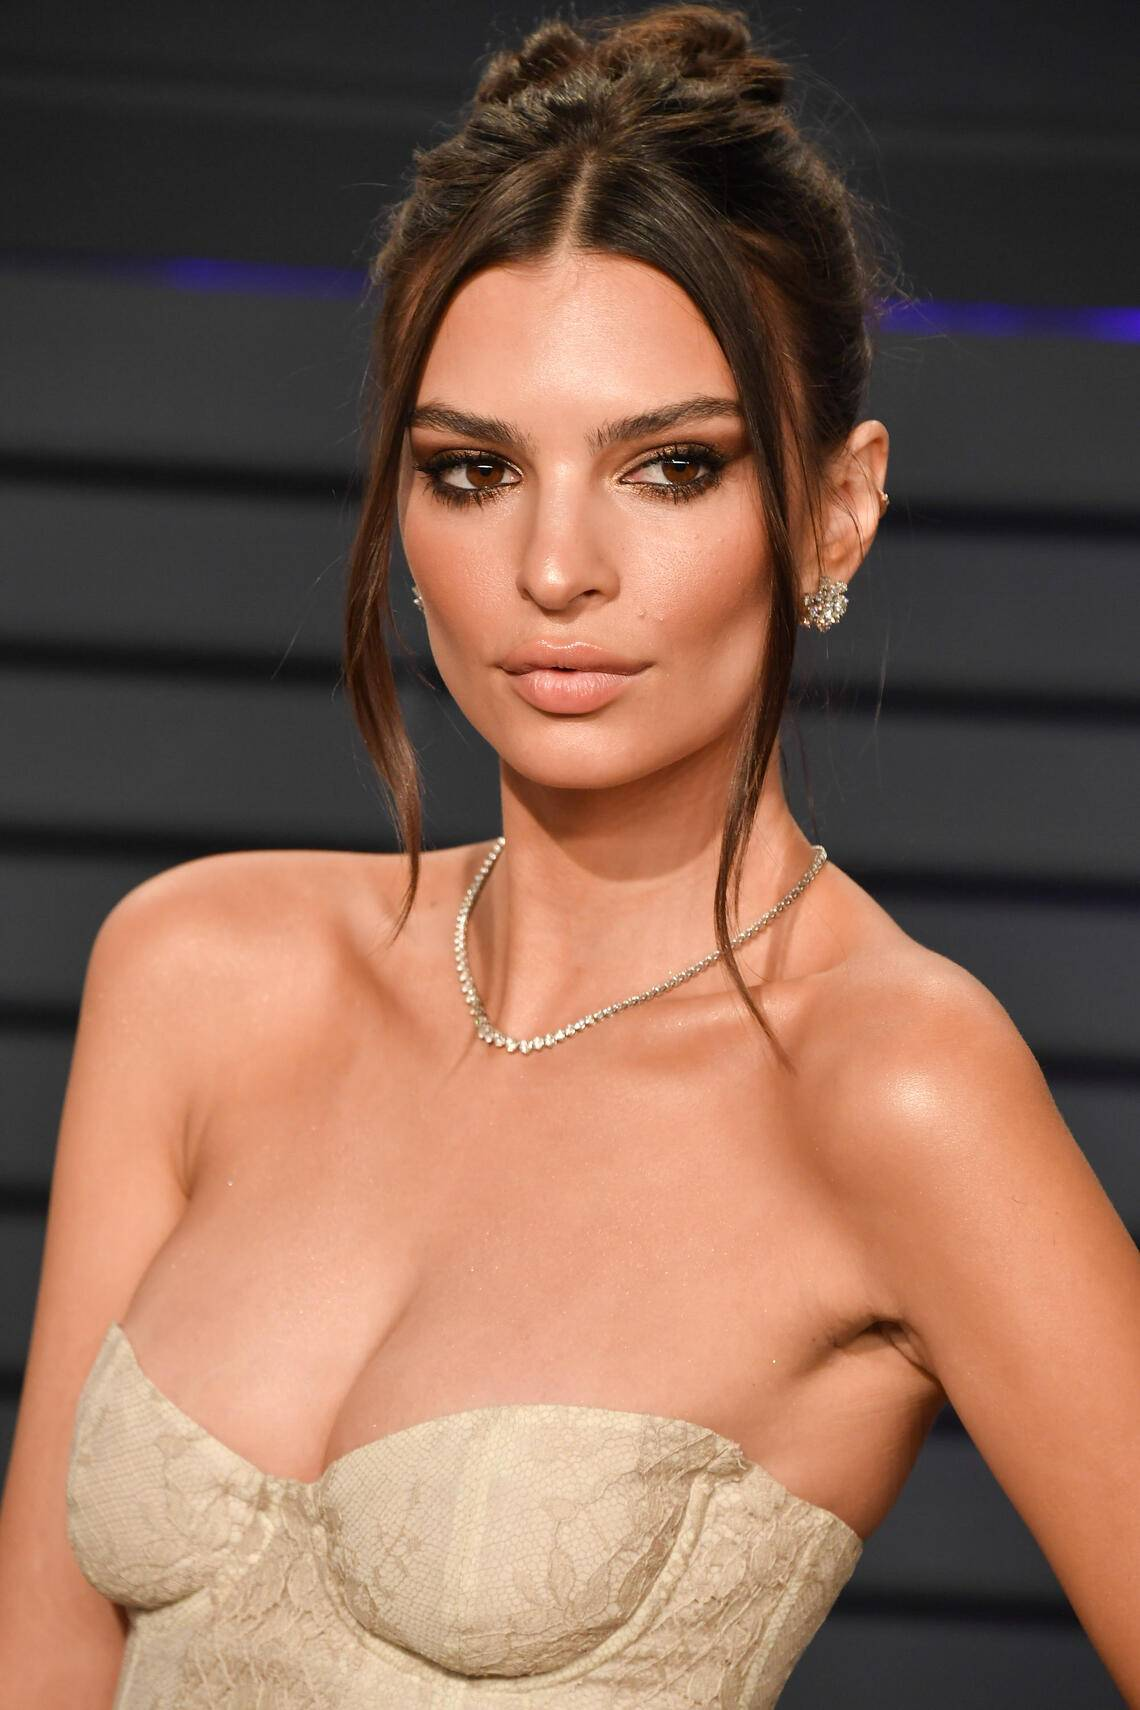 BEVERLY HILLS, CALIFORNIA - FEBRUARY 24: Emily Ratajkowski attends the 2019 Vanity Fair Oscar Party hosted by Radhika Jones at Wallis Annenberg Center for the Performing Arts on February 24, 2019 in Beverly Hills, California. (Photo by George Pimentel/Getty Images)